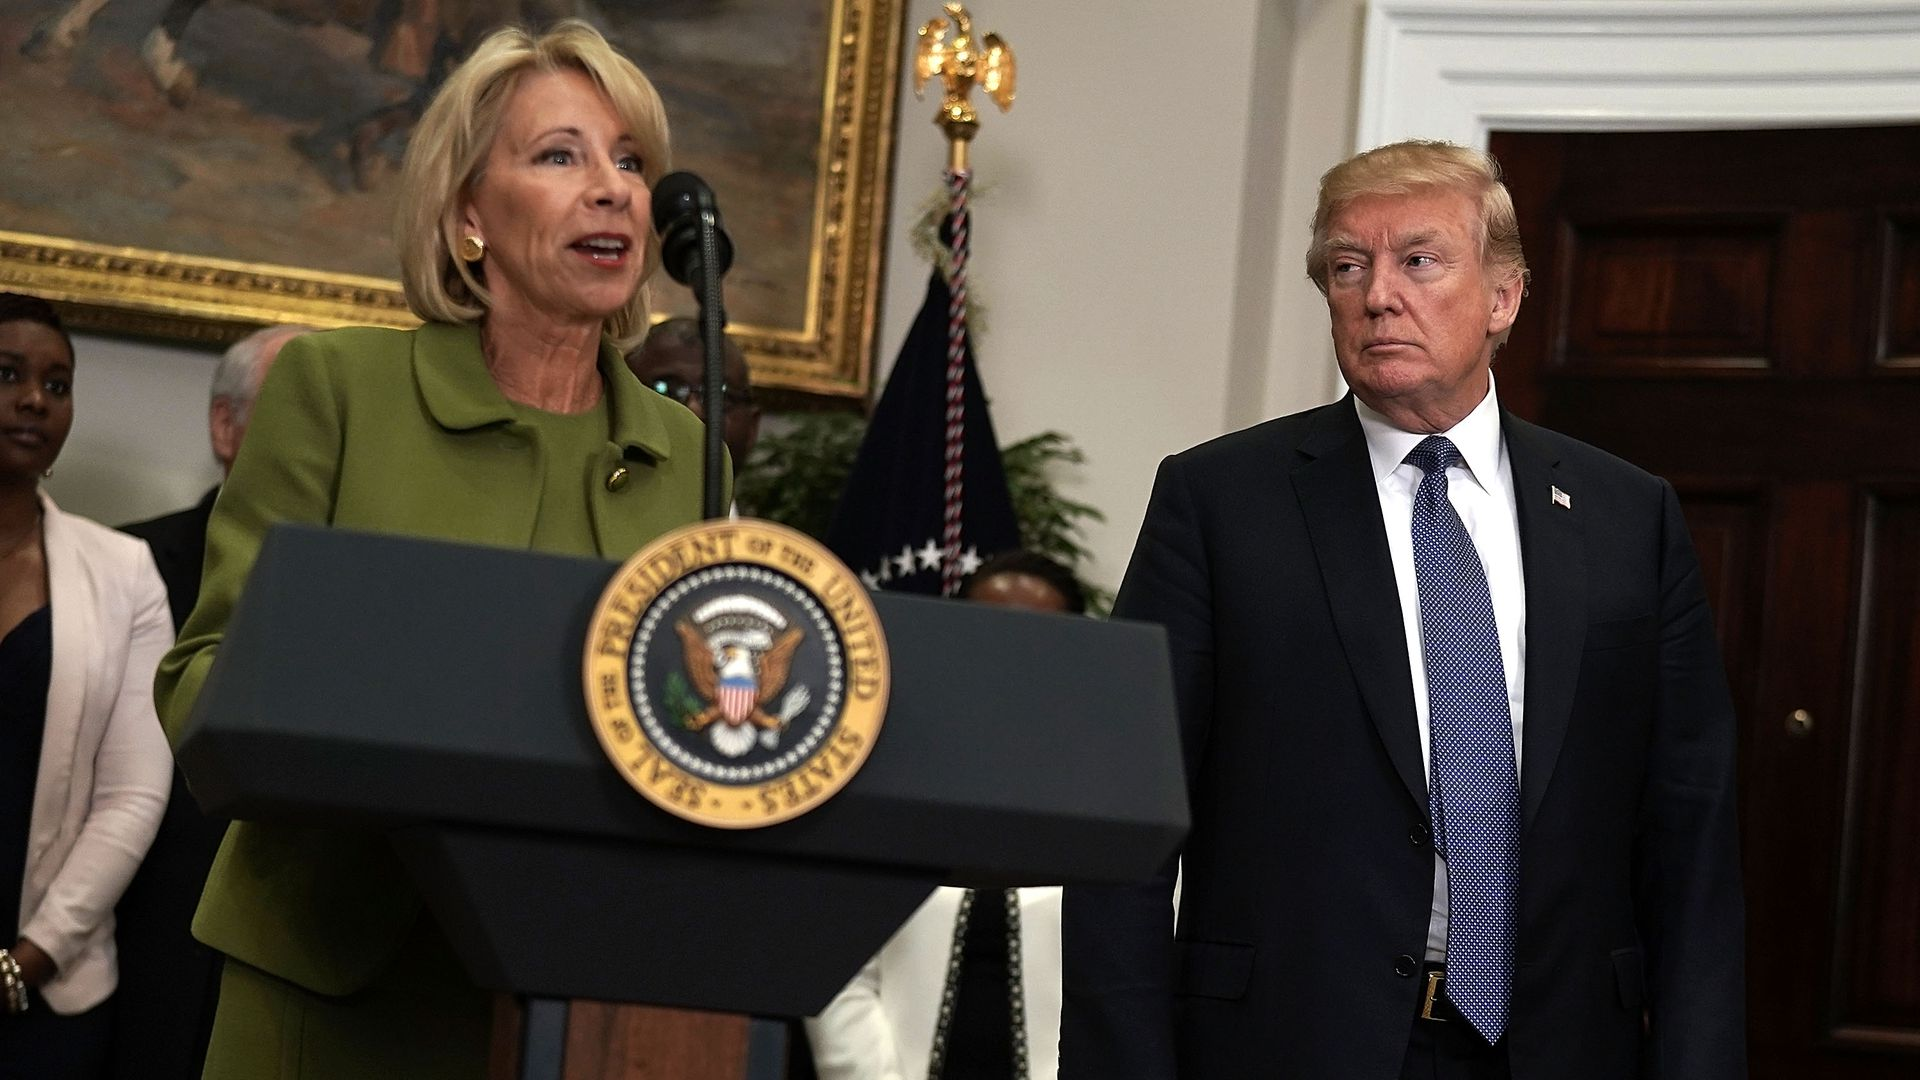 Education Secretary Betsy DeVos and President Donald Trump. Photo: Alex Wong/Getty Images